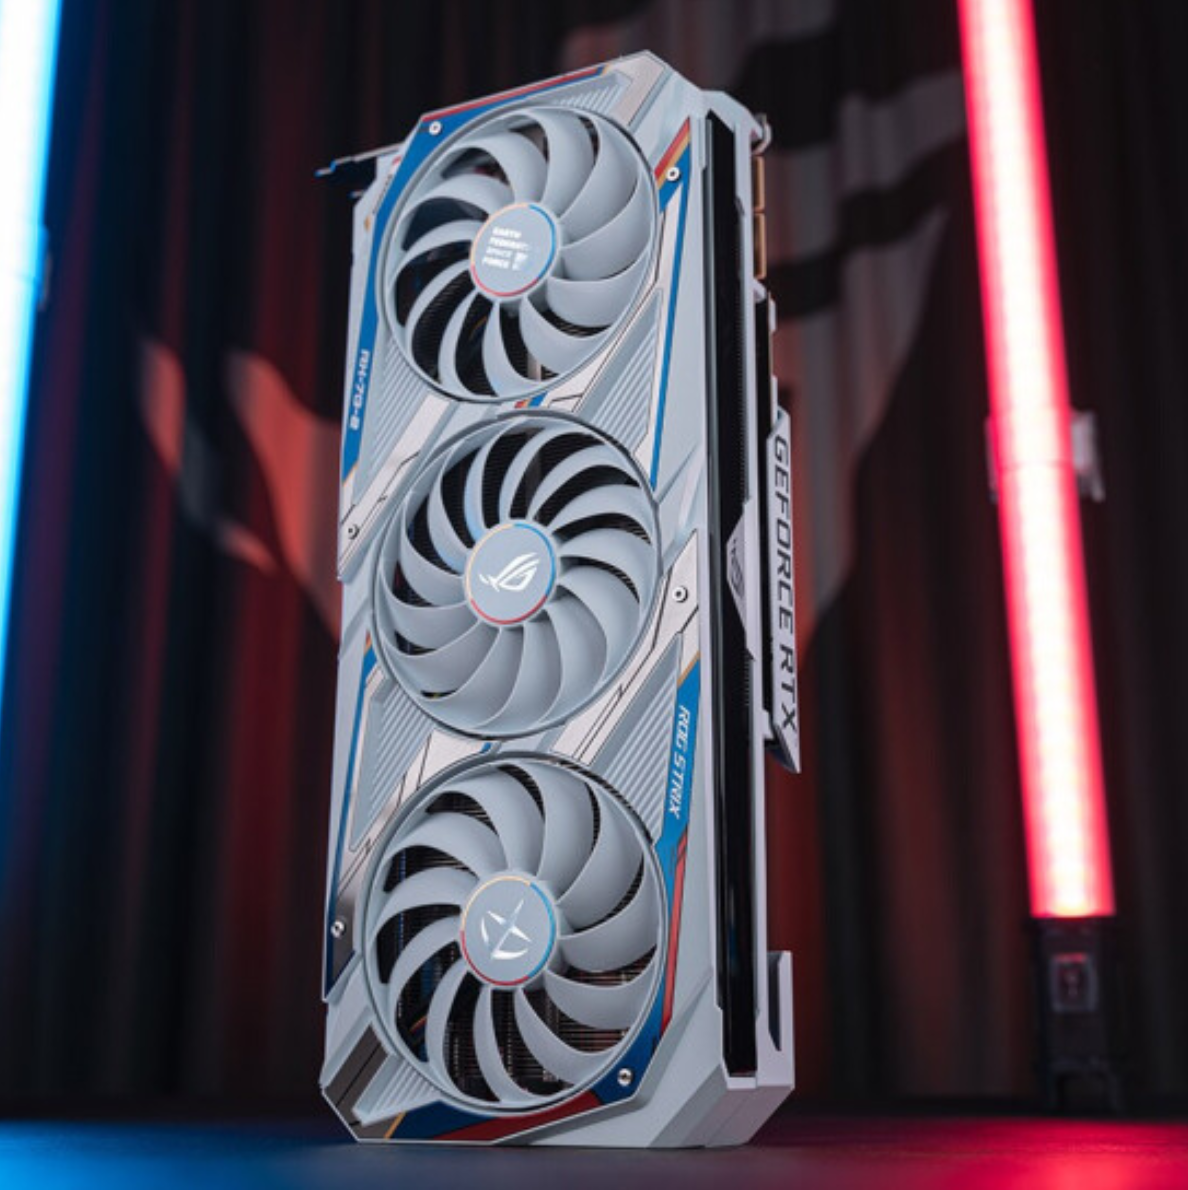 asus-geforce-rtx-3090-rog-strix-gundam-edition-graphics-card-pictured-again,-designed-for-collectors-&-priced-at-$2600-us